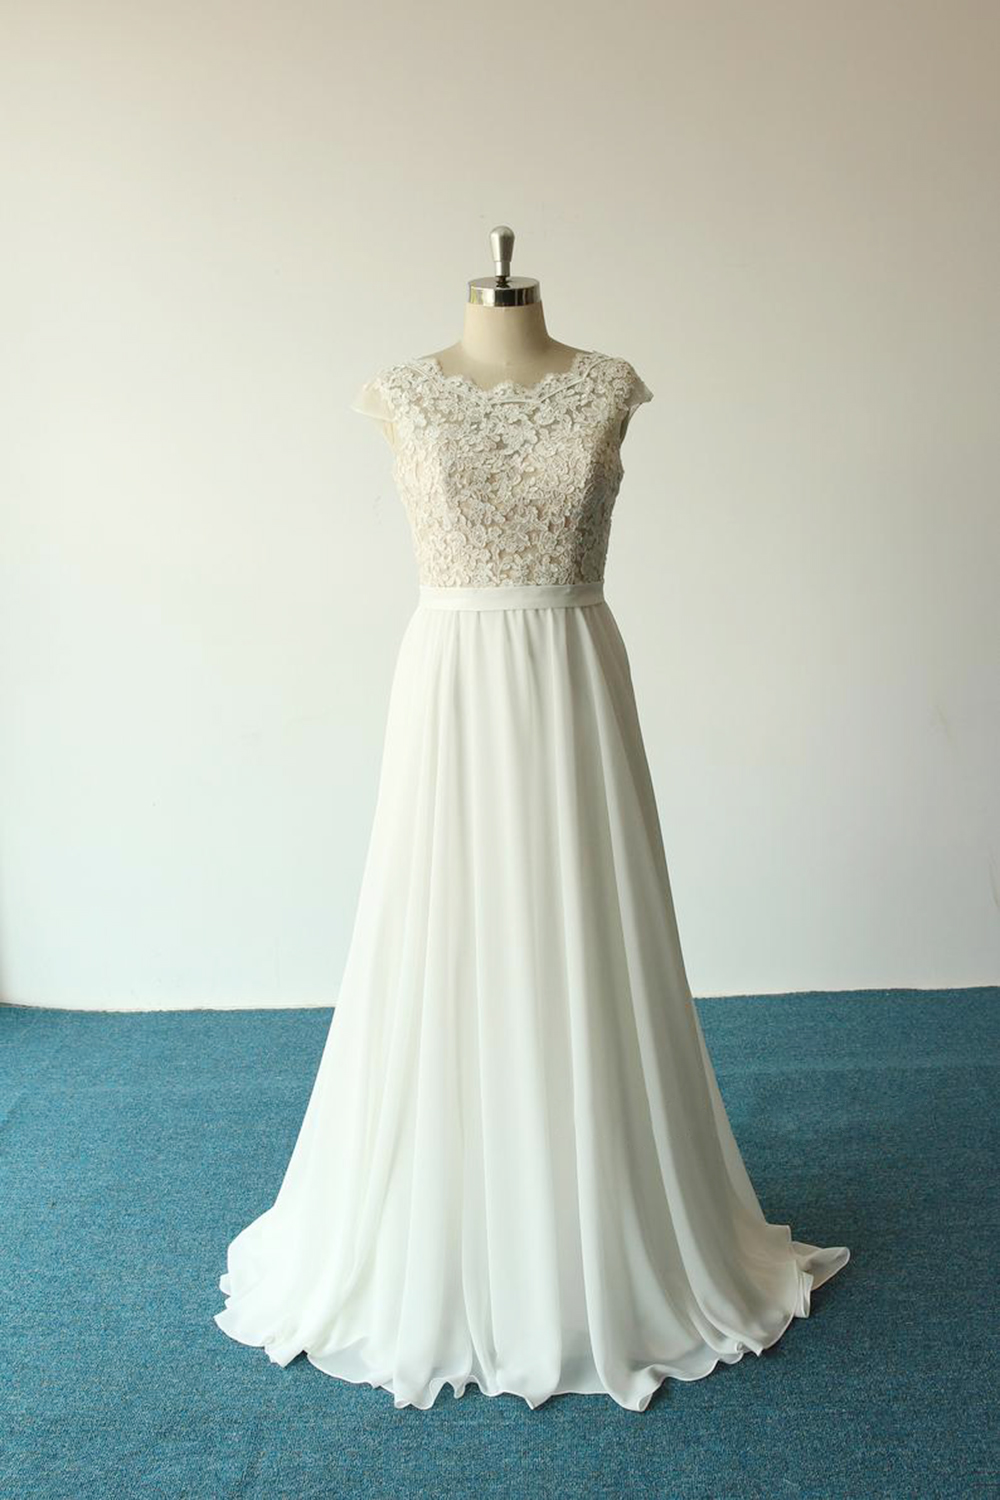 BMbridal Elegant A-line White Chiffon Wedding Dress Sleeveless Appliques Bridal Gowns On Sale